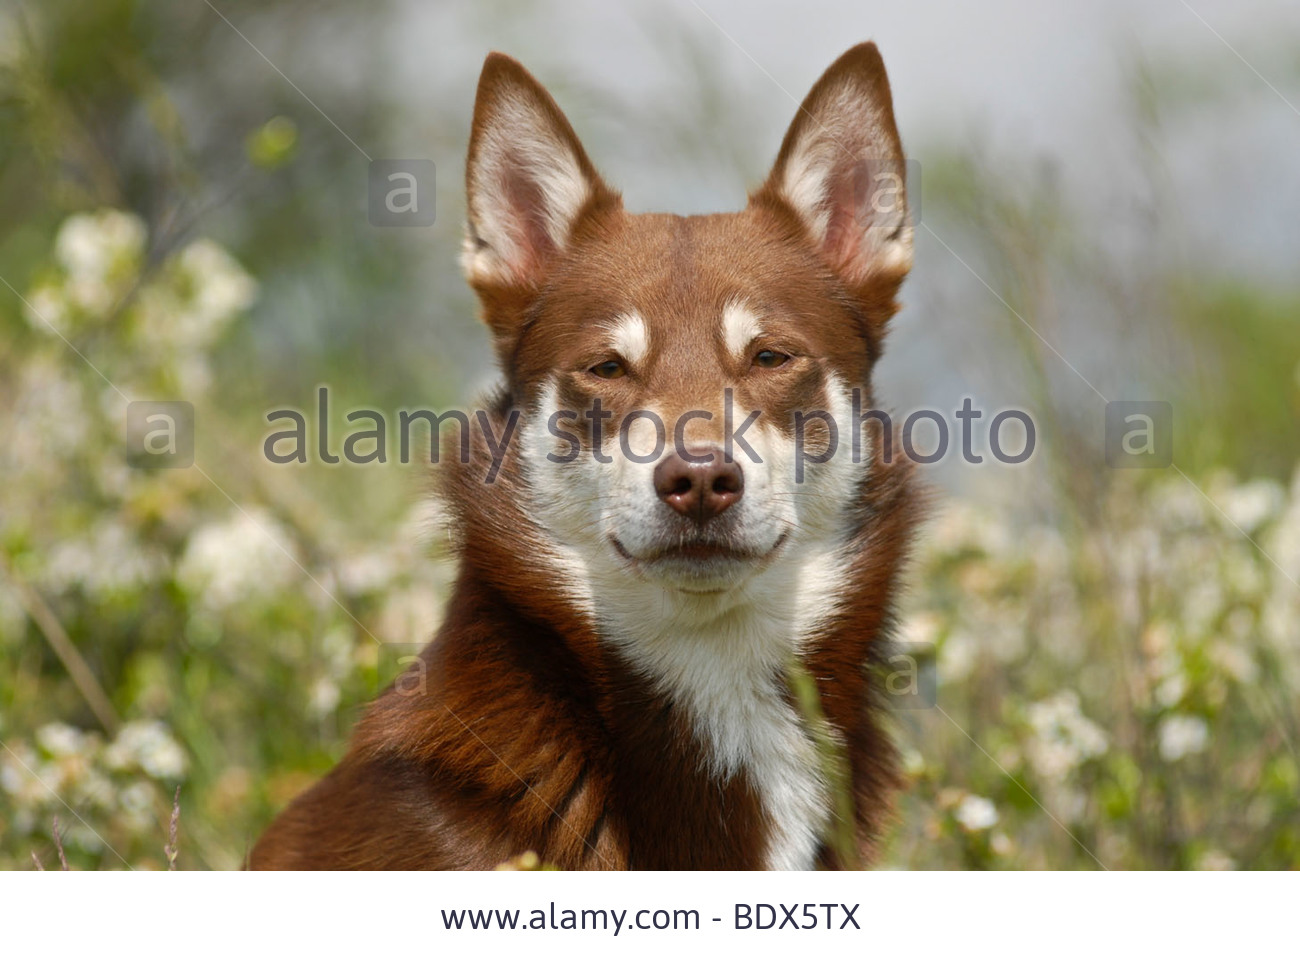 Lapponian Herder Dog: Lapponian Stock Lapponian Herder Lapinporokoira Or Lapp Reindeer Dog Portrait In A Breed